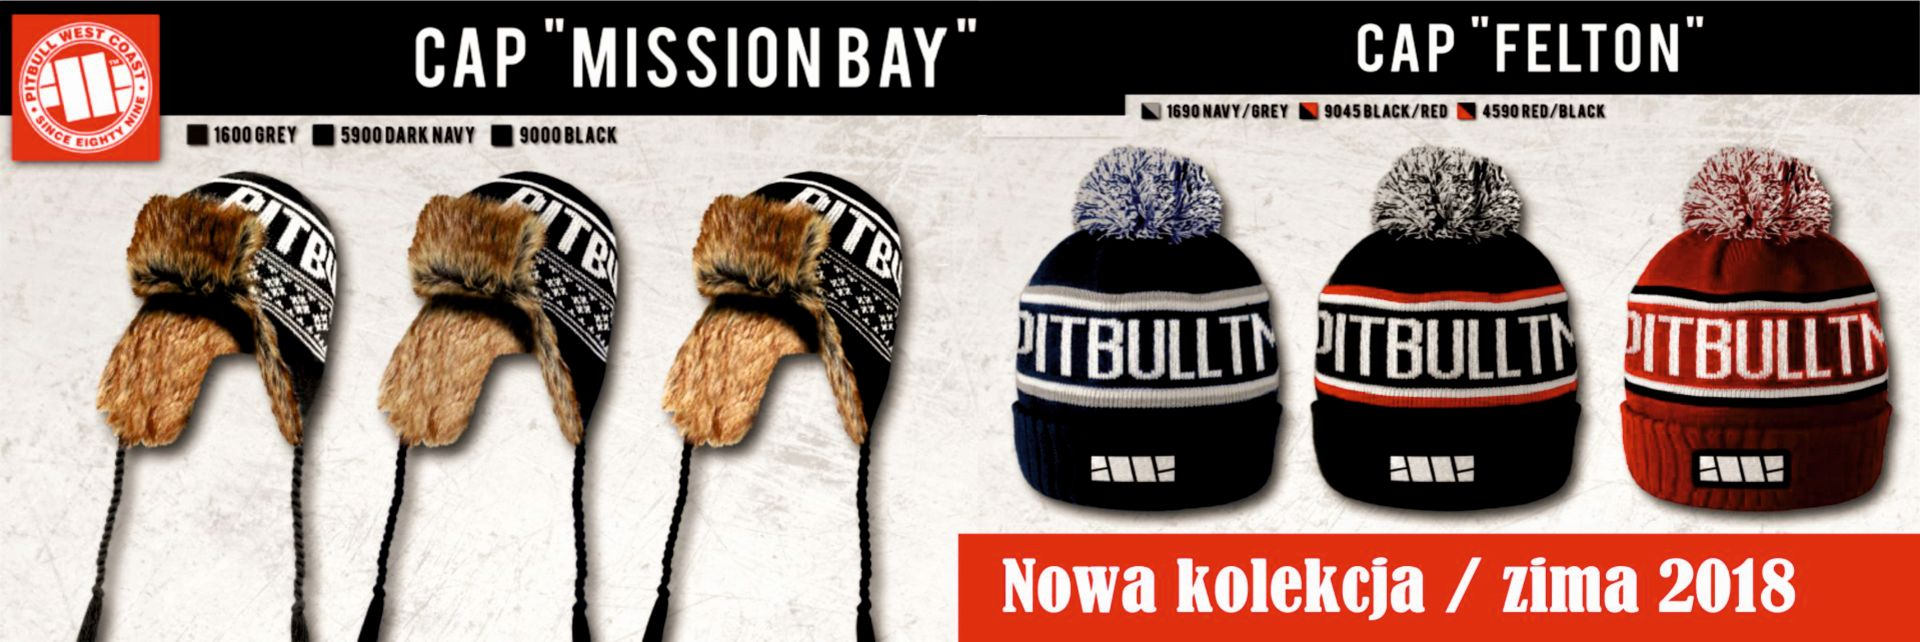 PitBull Cap Mission Bay - Dark Navy